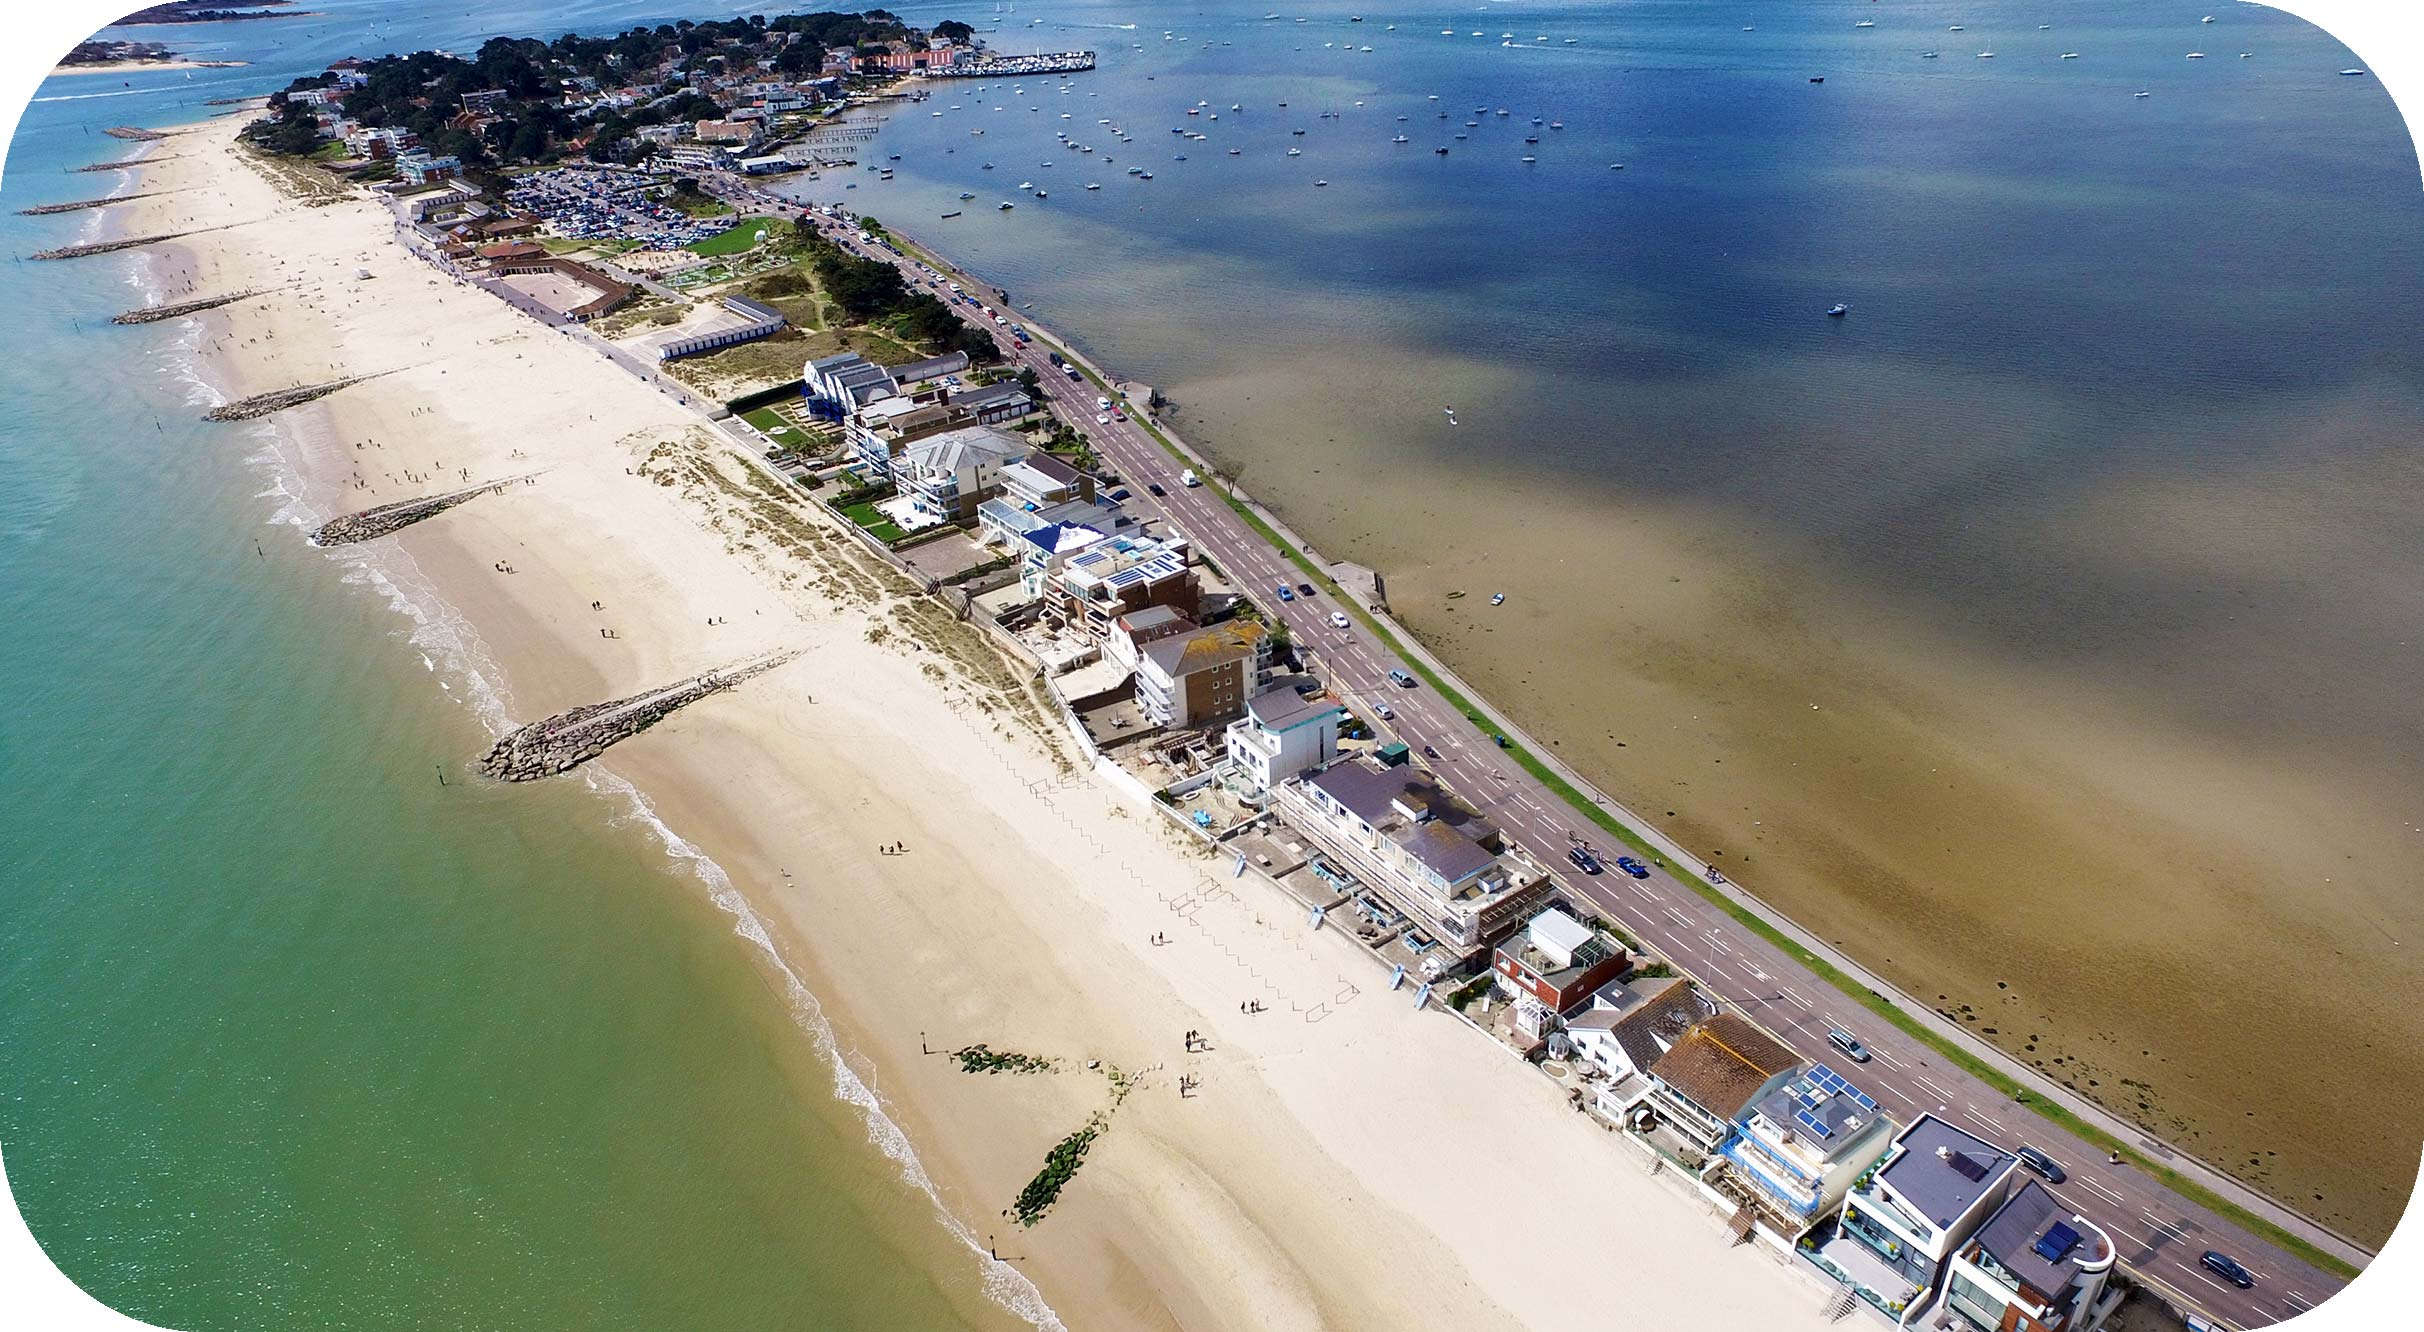 Drone photography of Sandbanks